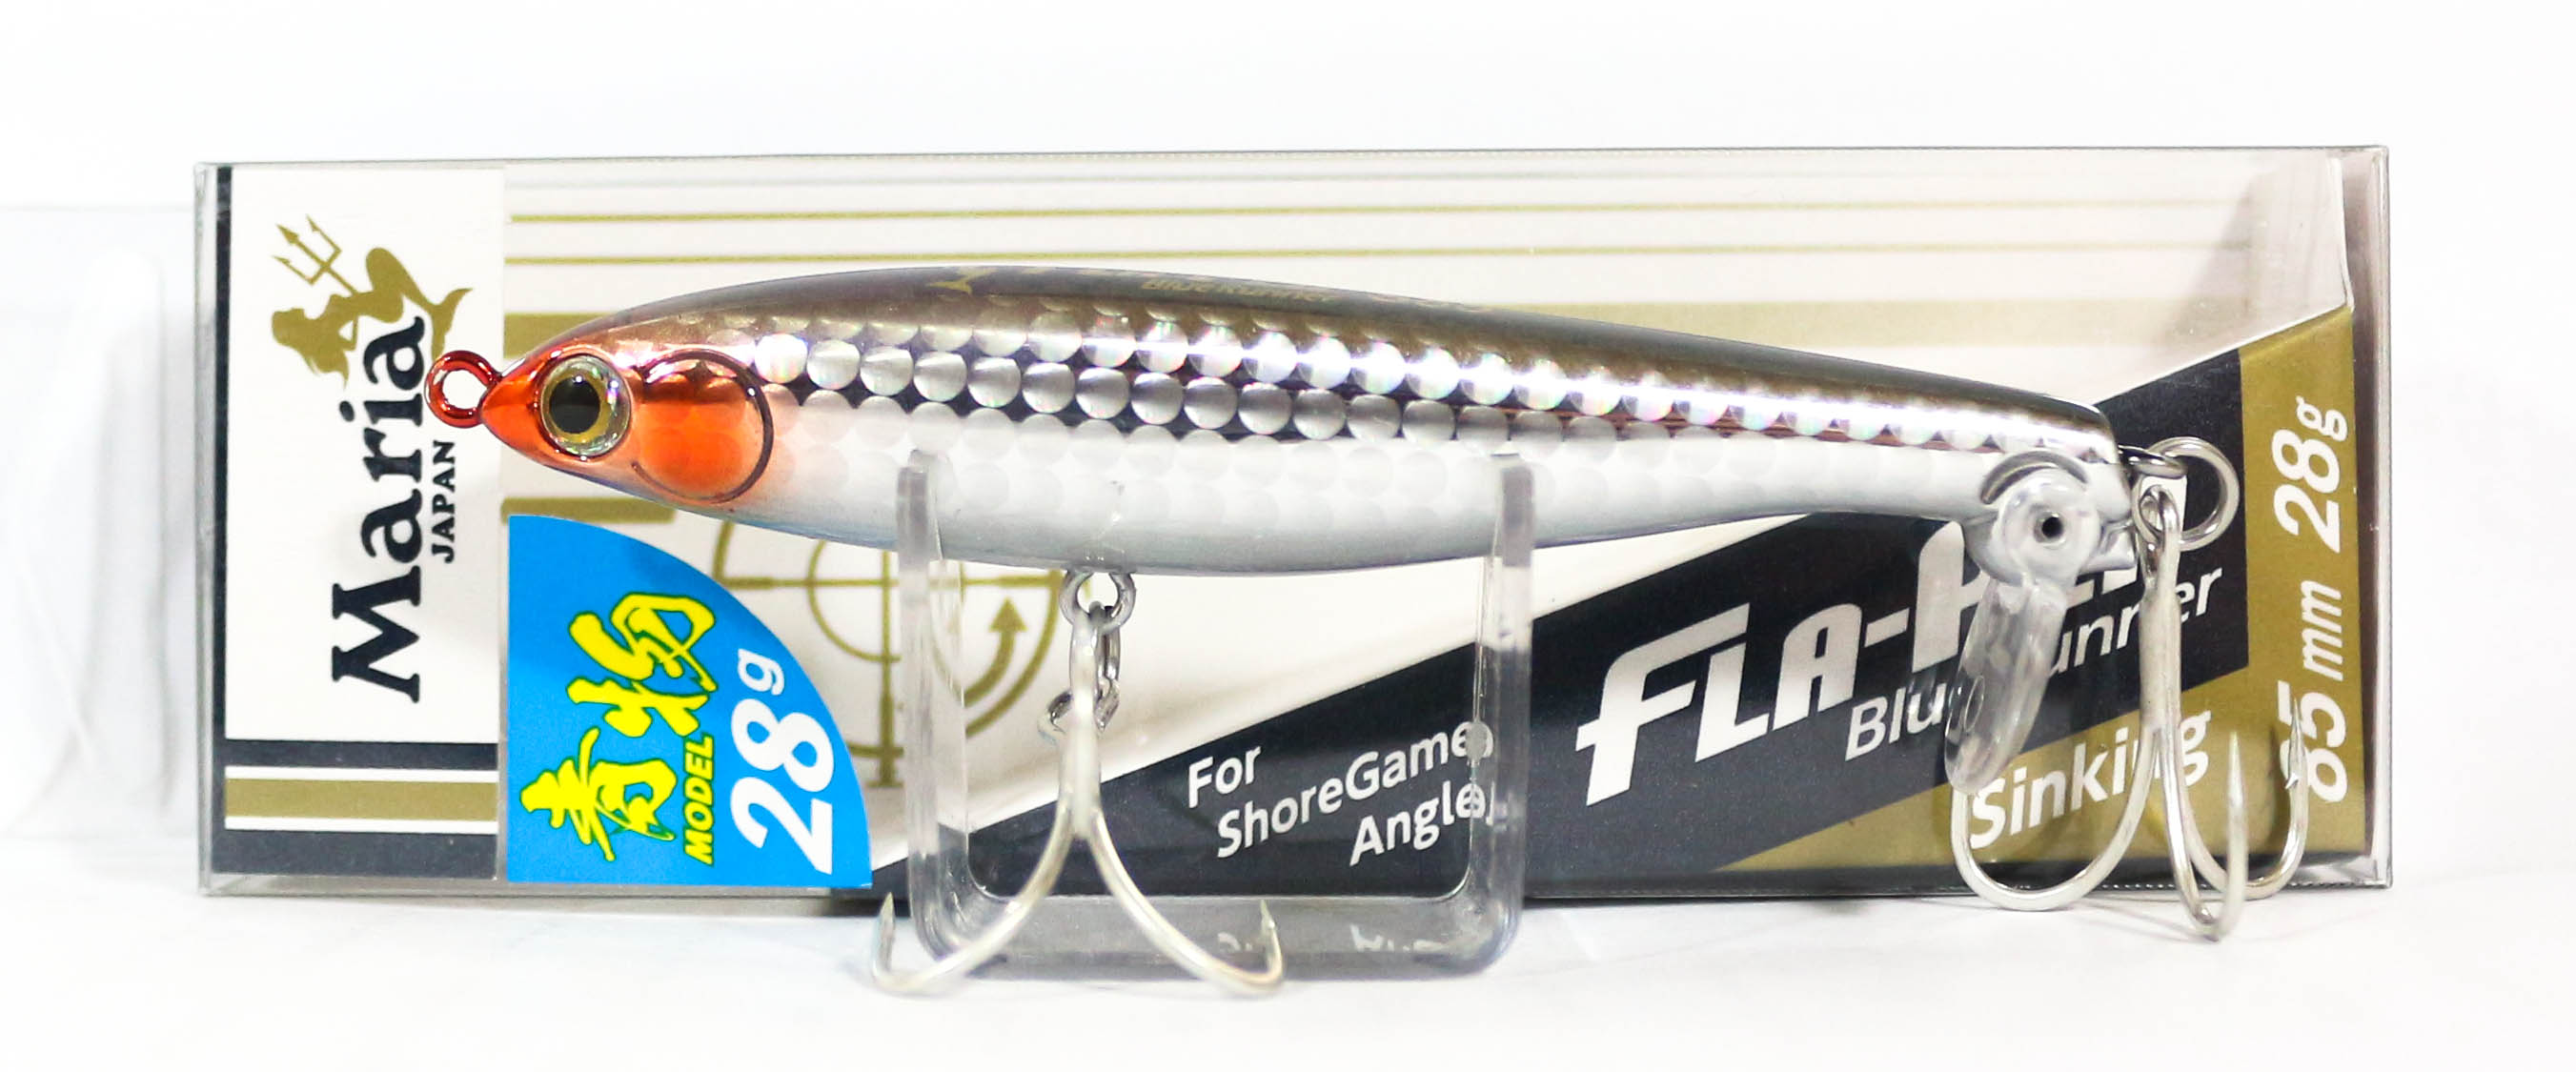 Maria Fla Pen S85 Fluttering Pencil Sinking Lure B1OH (9817)